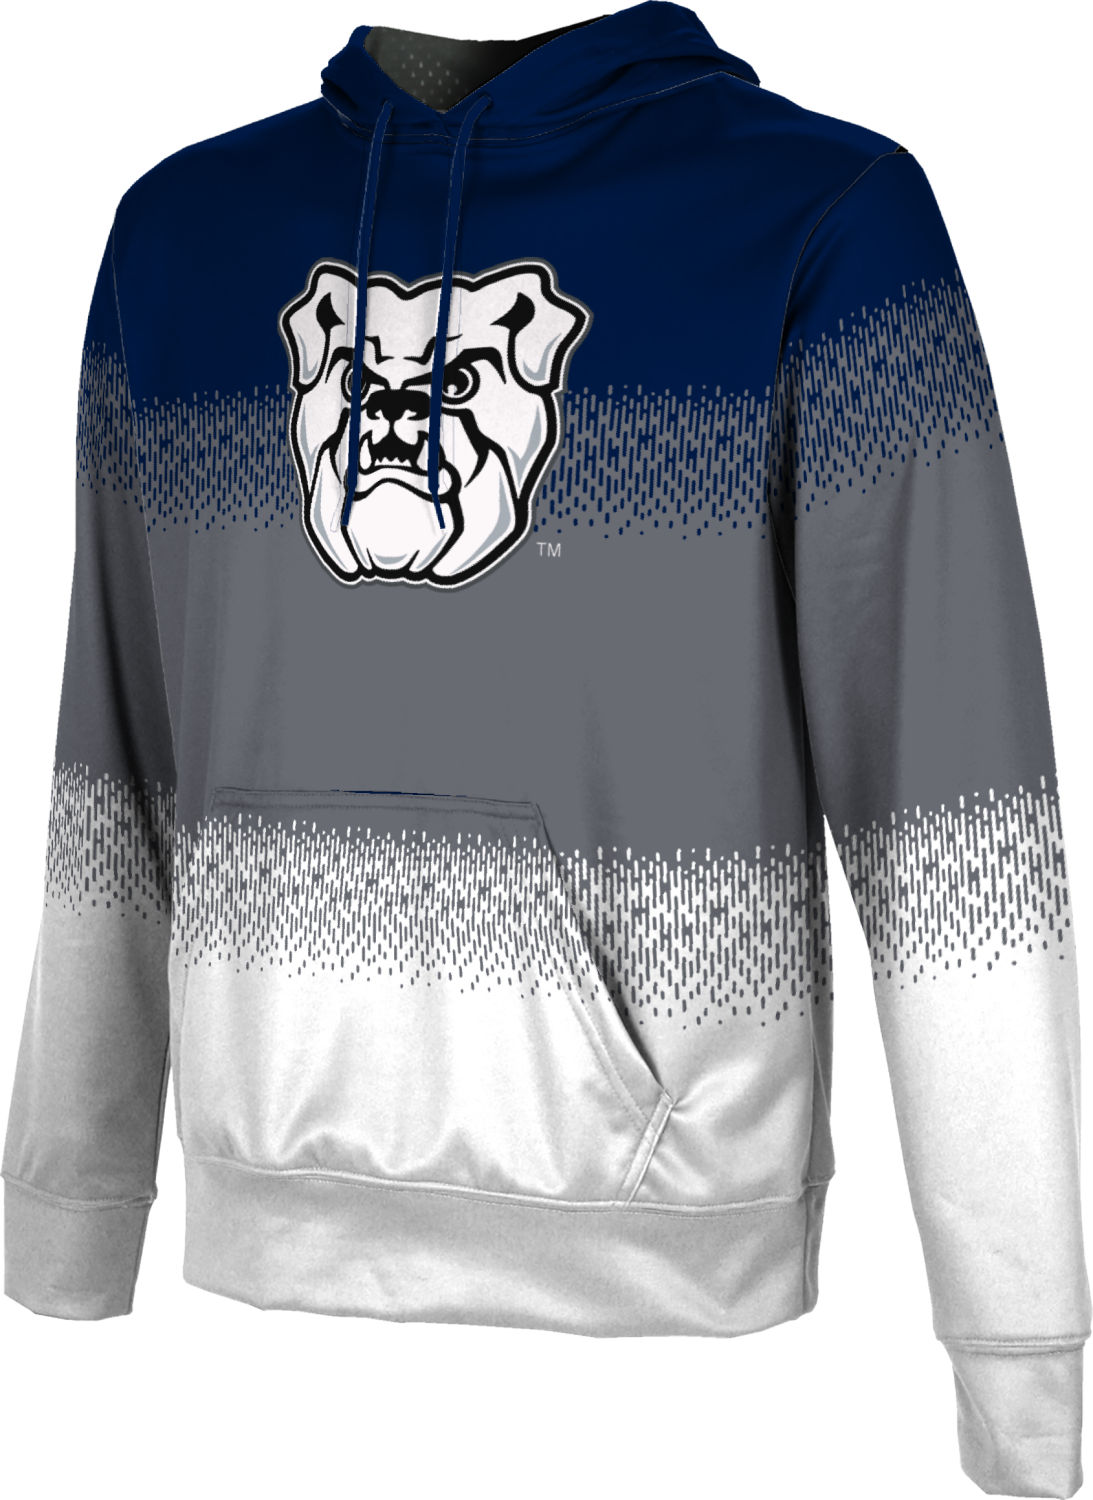 Drip ProSphere Old Dominion University Boys Fullzip Hoodie